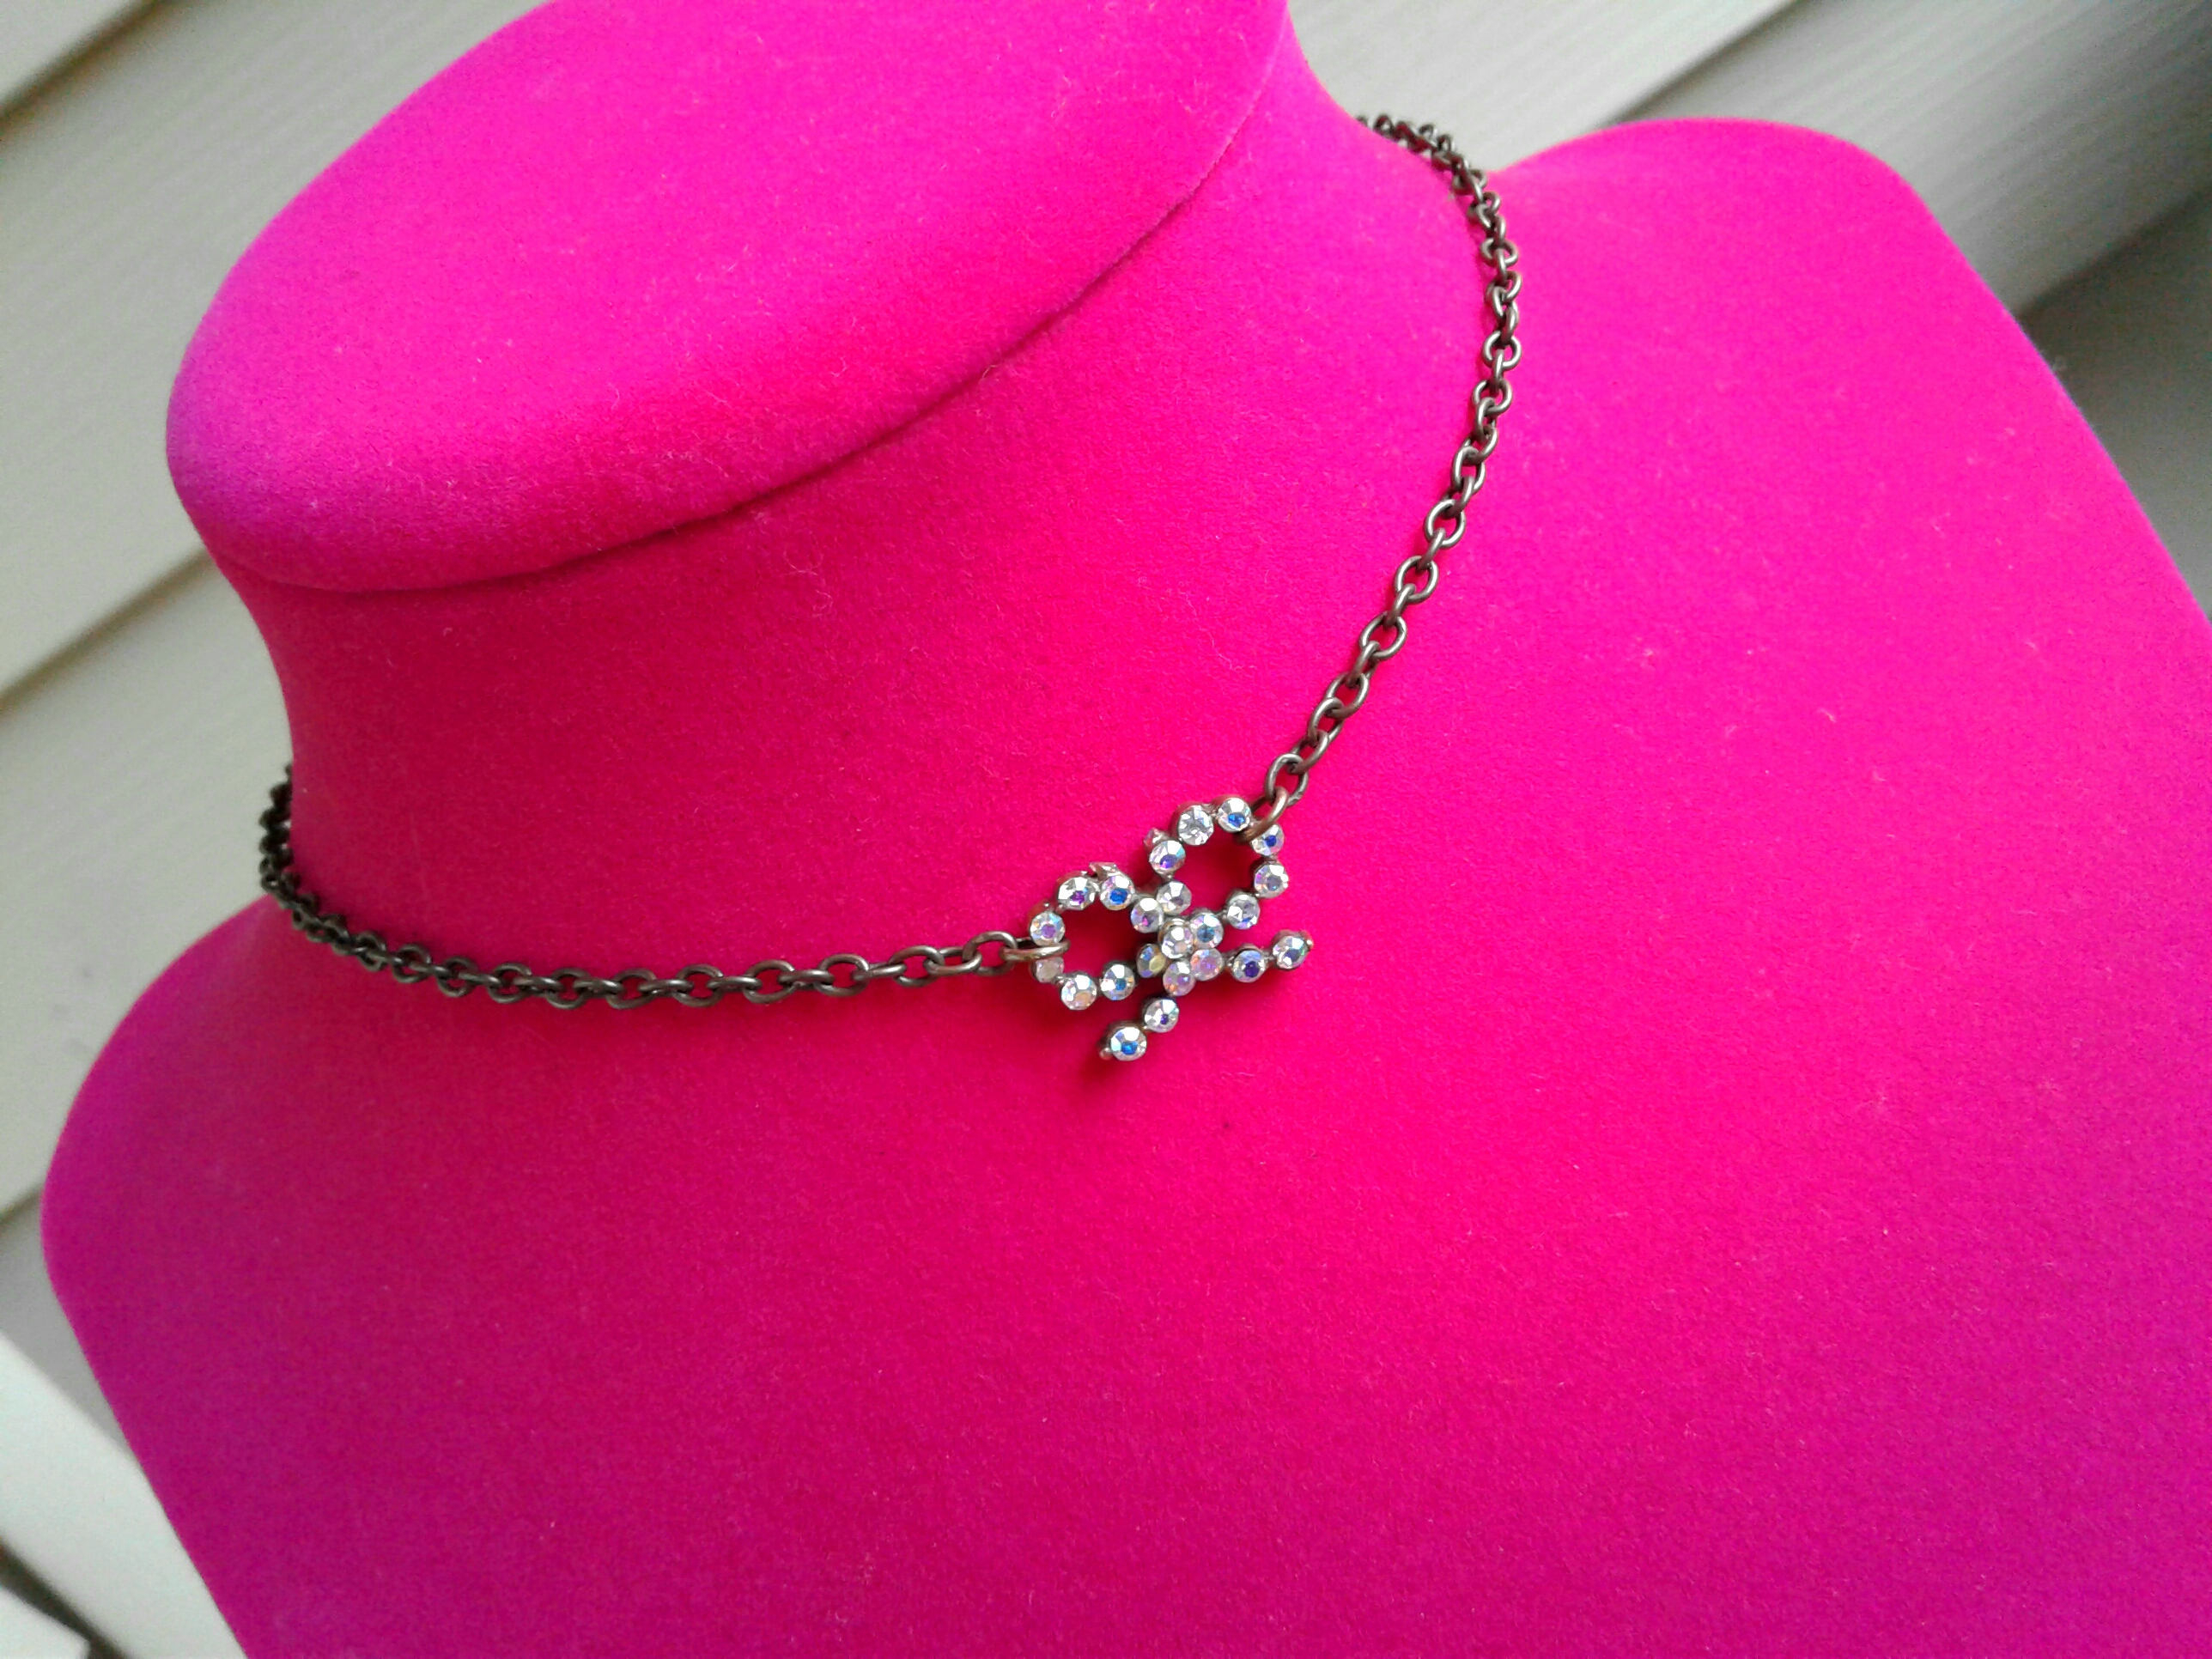 Sparkling Bow Choker Rhinestone Choker Necklace Chokers Bohemian Choker Bow  Charm Choker Bohemian Necklace Women's Choker From Artisanjewelrygifts Throughout Most Current Sparkling Bow Necklaces (View 17 of 25)